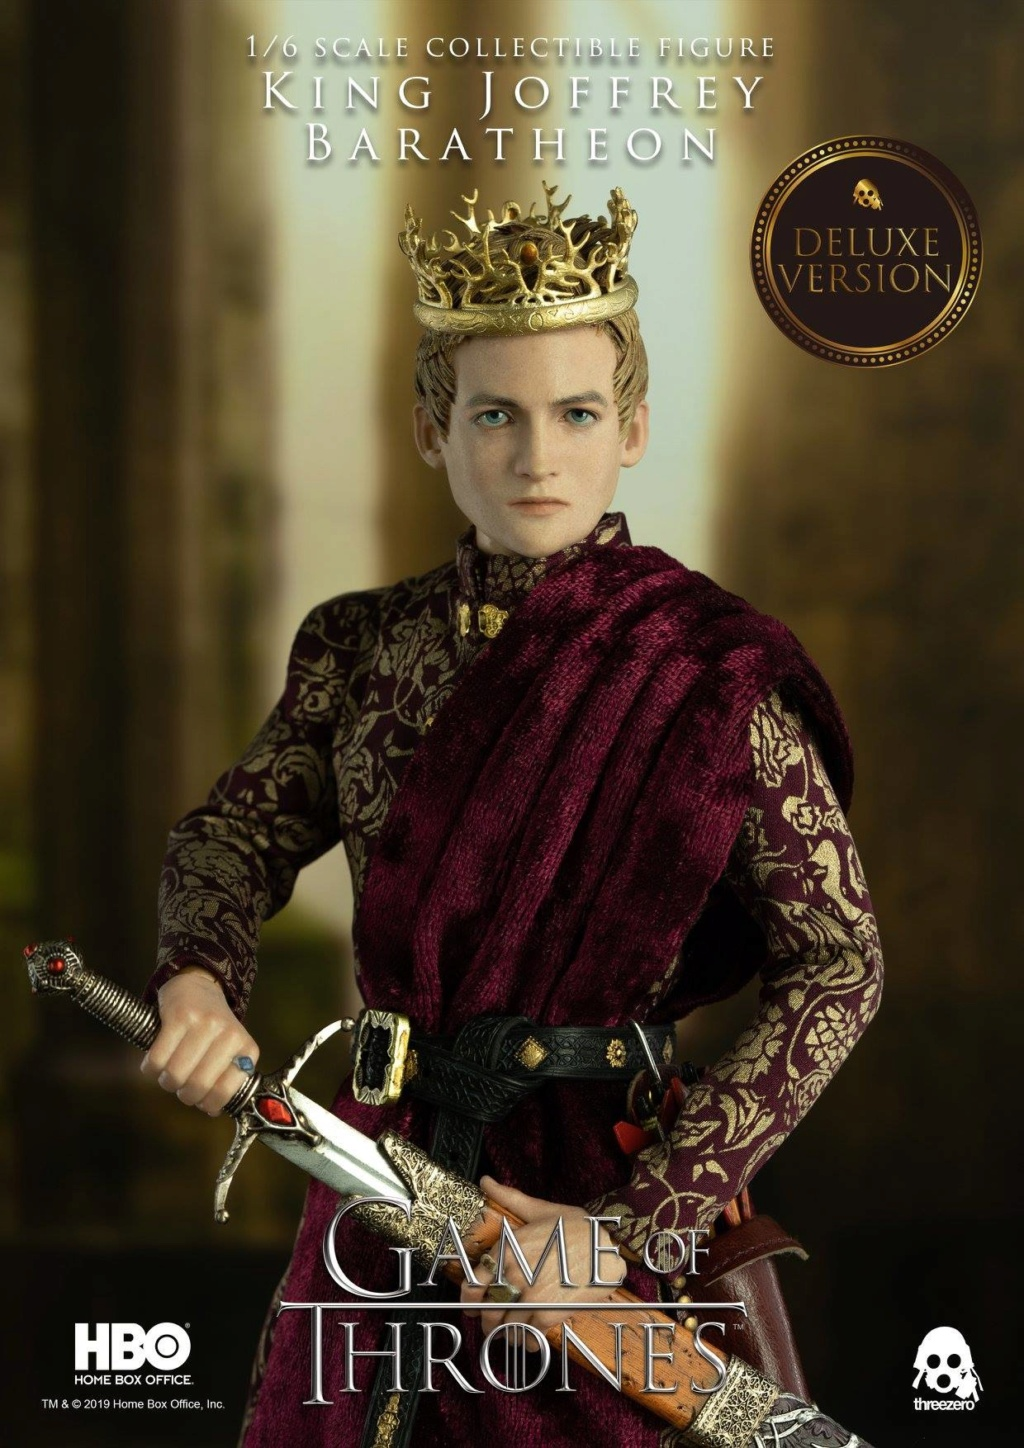 TVShow - NEW PRODUCT: ThreeZero: 1/6 scale Game of Thrones – King Joffrey Baratheon (Standard edition) & (Deluxe Edition) (UPDATED) 18483610